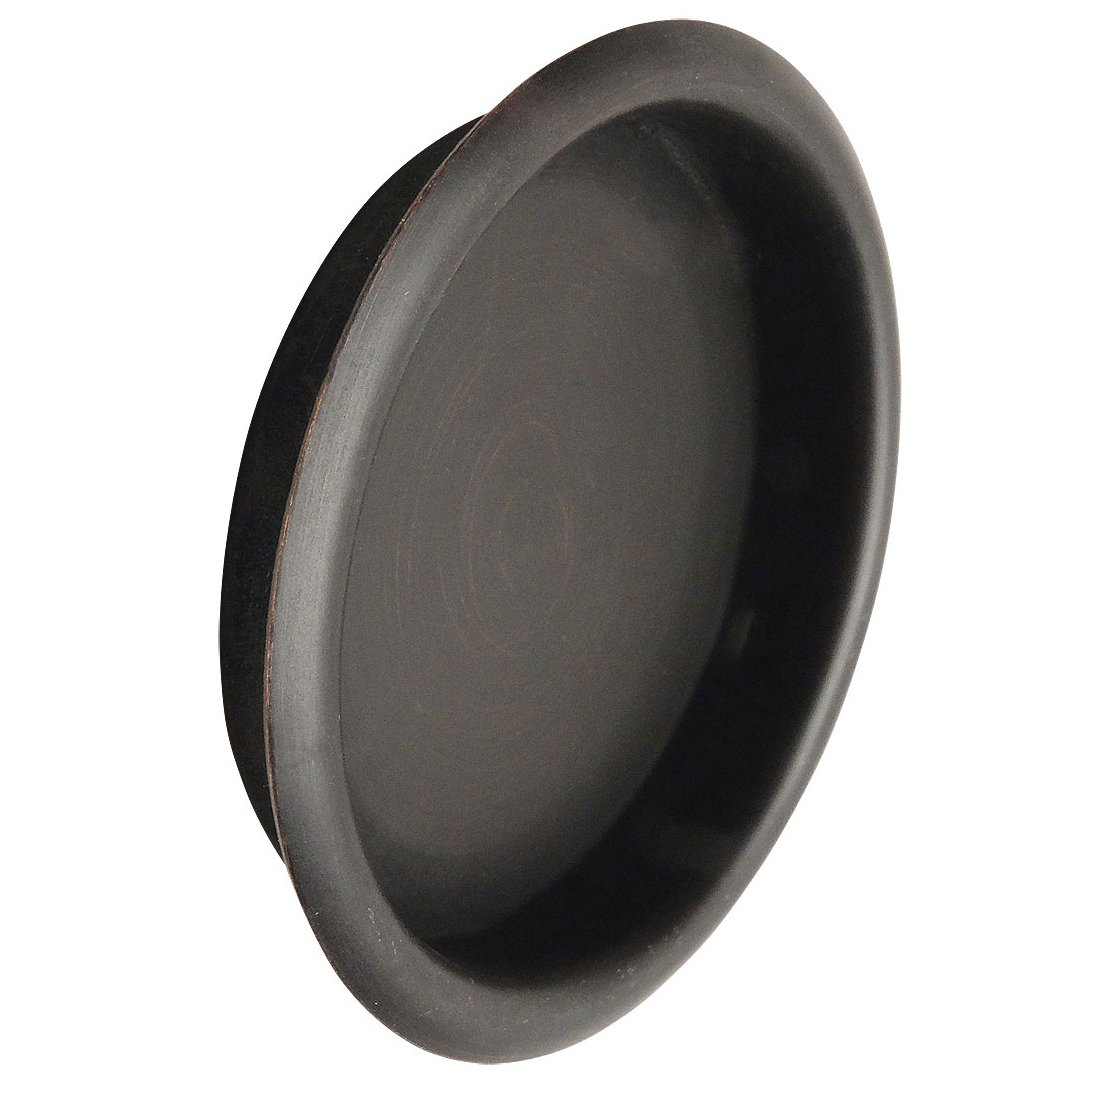 Designers Impressions Oil Rubbed Bronze 2-1/8'' Pocket Door Finger Cup Pull : 47651